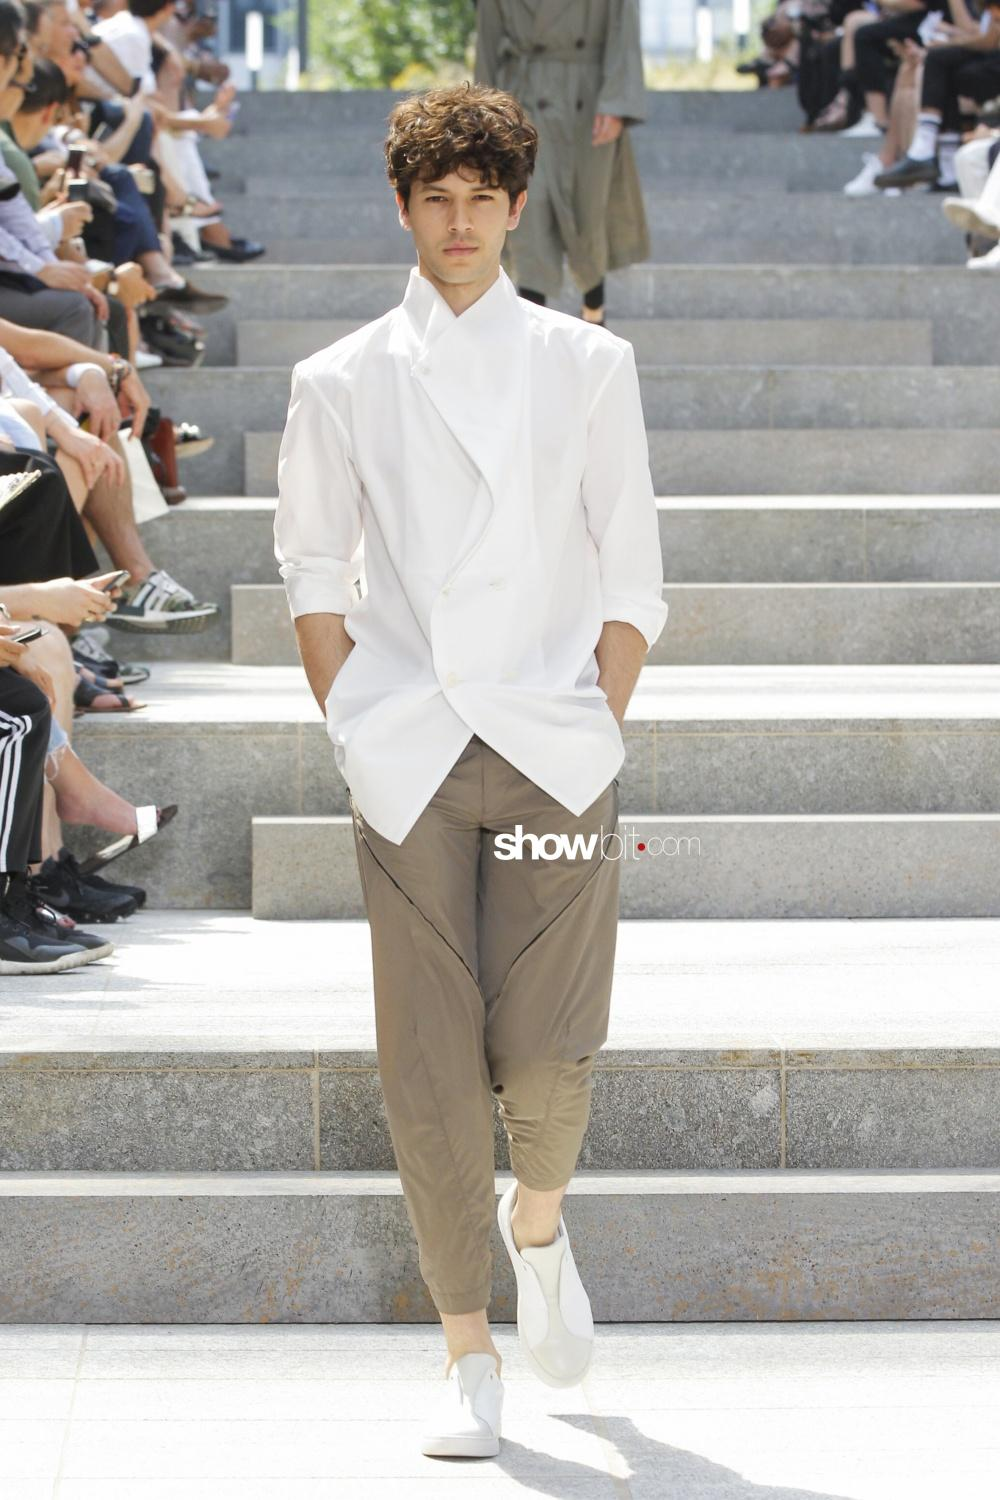 8925f500794 Menswear Spring Summer 2018 Collections New Trend  Re-interpreting ...